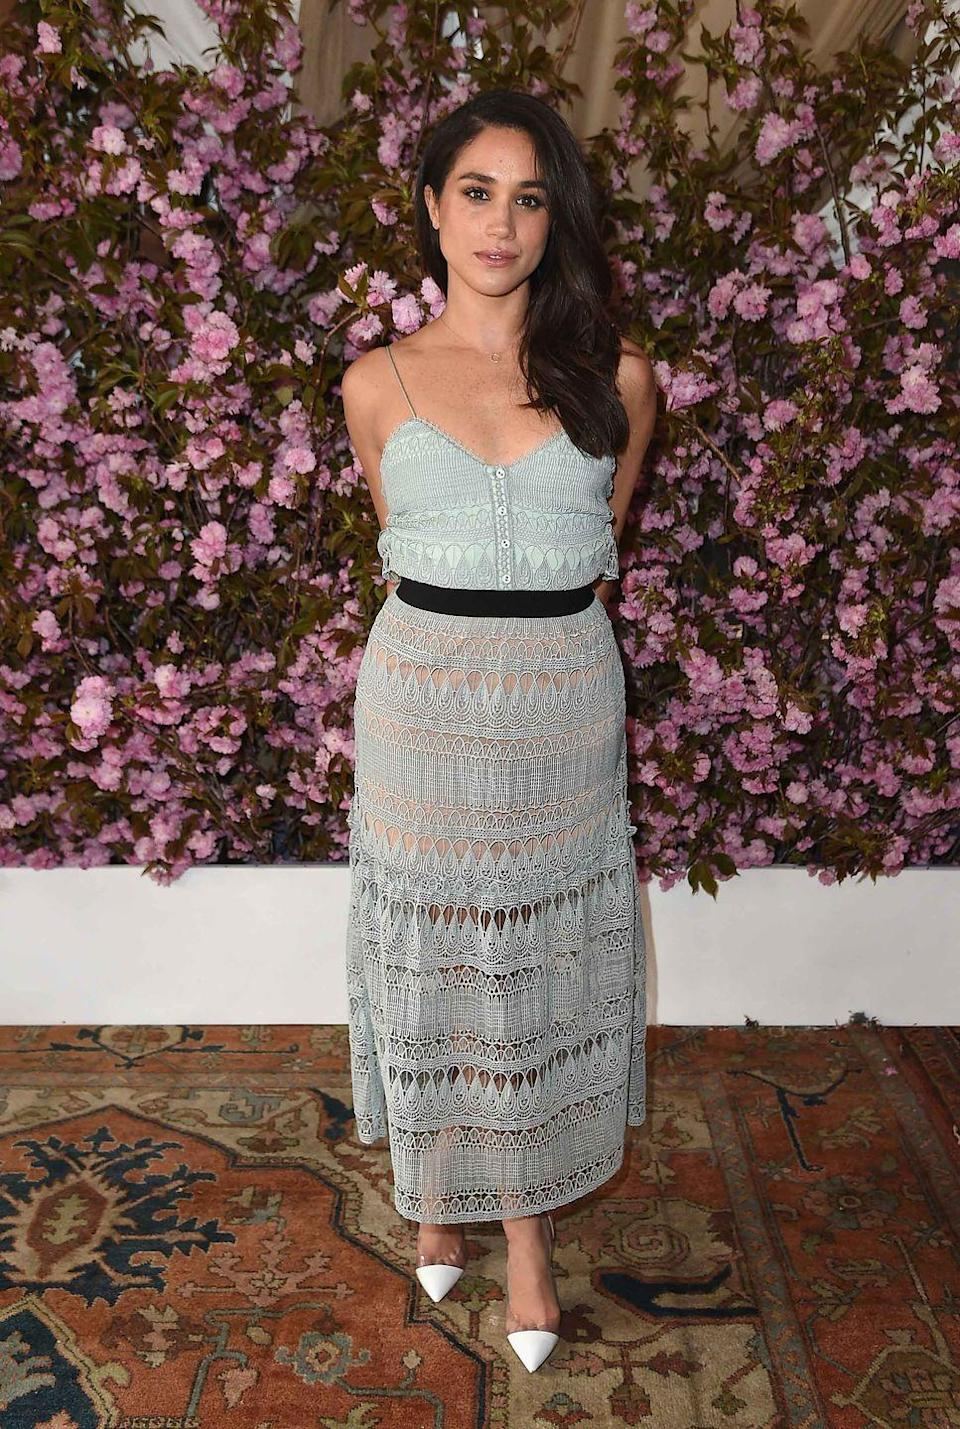 "<p>Markle attends the <em>Glamour</em> and L'Oreal Paris Celebrate 2016 College Women of the Year at NoMad Hotel Rooftop in New York City wearing a lace dress by Self-Portrait. </p><p><a class=""link rapid-noclick-resp"" href=""https://go.redirectingat.com?id=74968X1596630&url=http%3A%2F%2Fwww.intermixonline.com%2Fself-portrait%2Fbandeau-chevron-knit-maxi-dress%2FSP17-072L.html&sref=https%3A%2F%2Fwww.townandcountrymag.com%2Fstyle%2Ffashion-trends%2Fg3272%2Fmeghan-markle-preppy-style%2F"" rel=""nofollow noopener"" target=""_blank"" data-ylk=""slk:SHOP SIMILAR"">SHOP SIMILAR</a> <em>Self-Portrait Bandeau Chevron Knit Maxi Dress, $580 </em><br></p>"